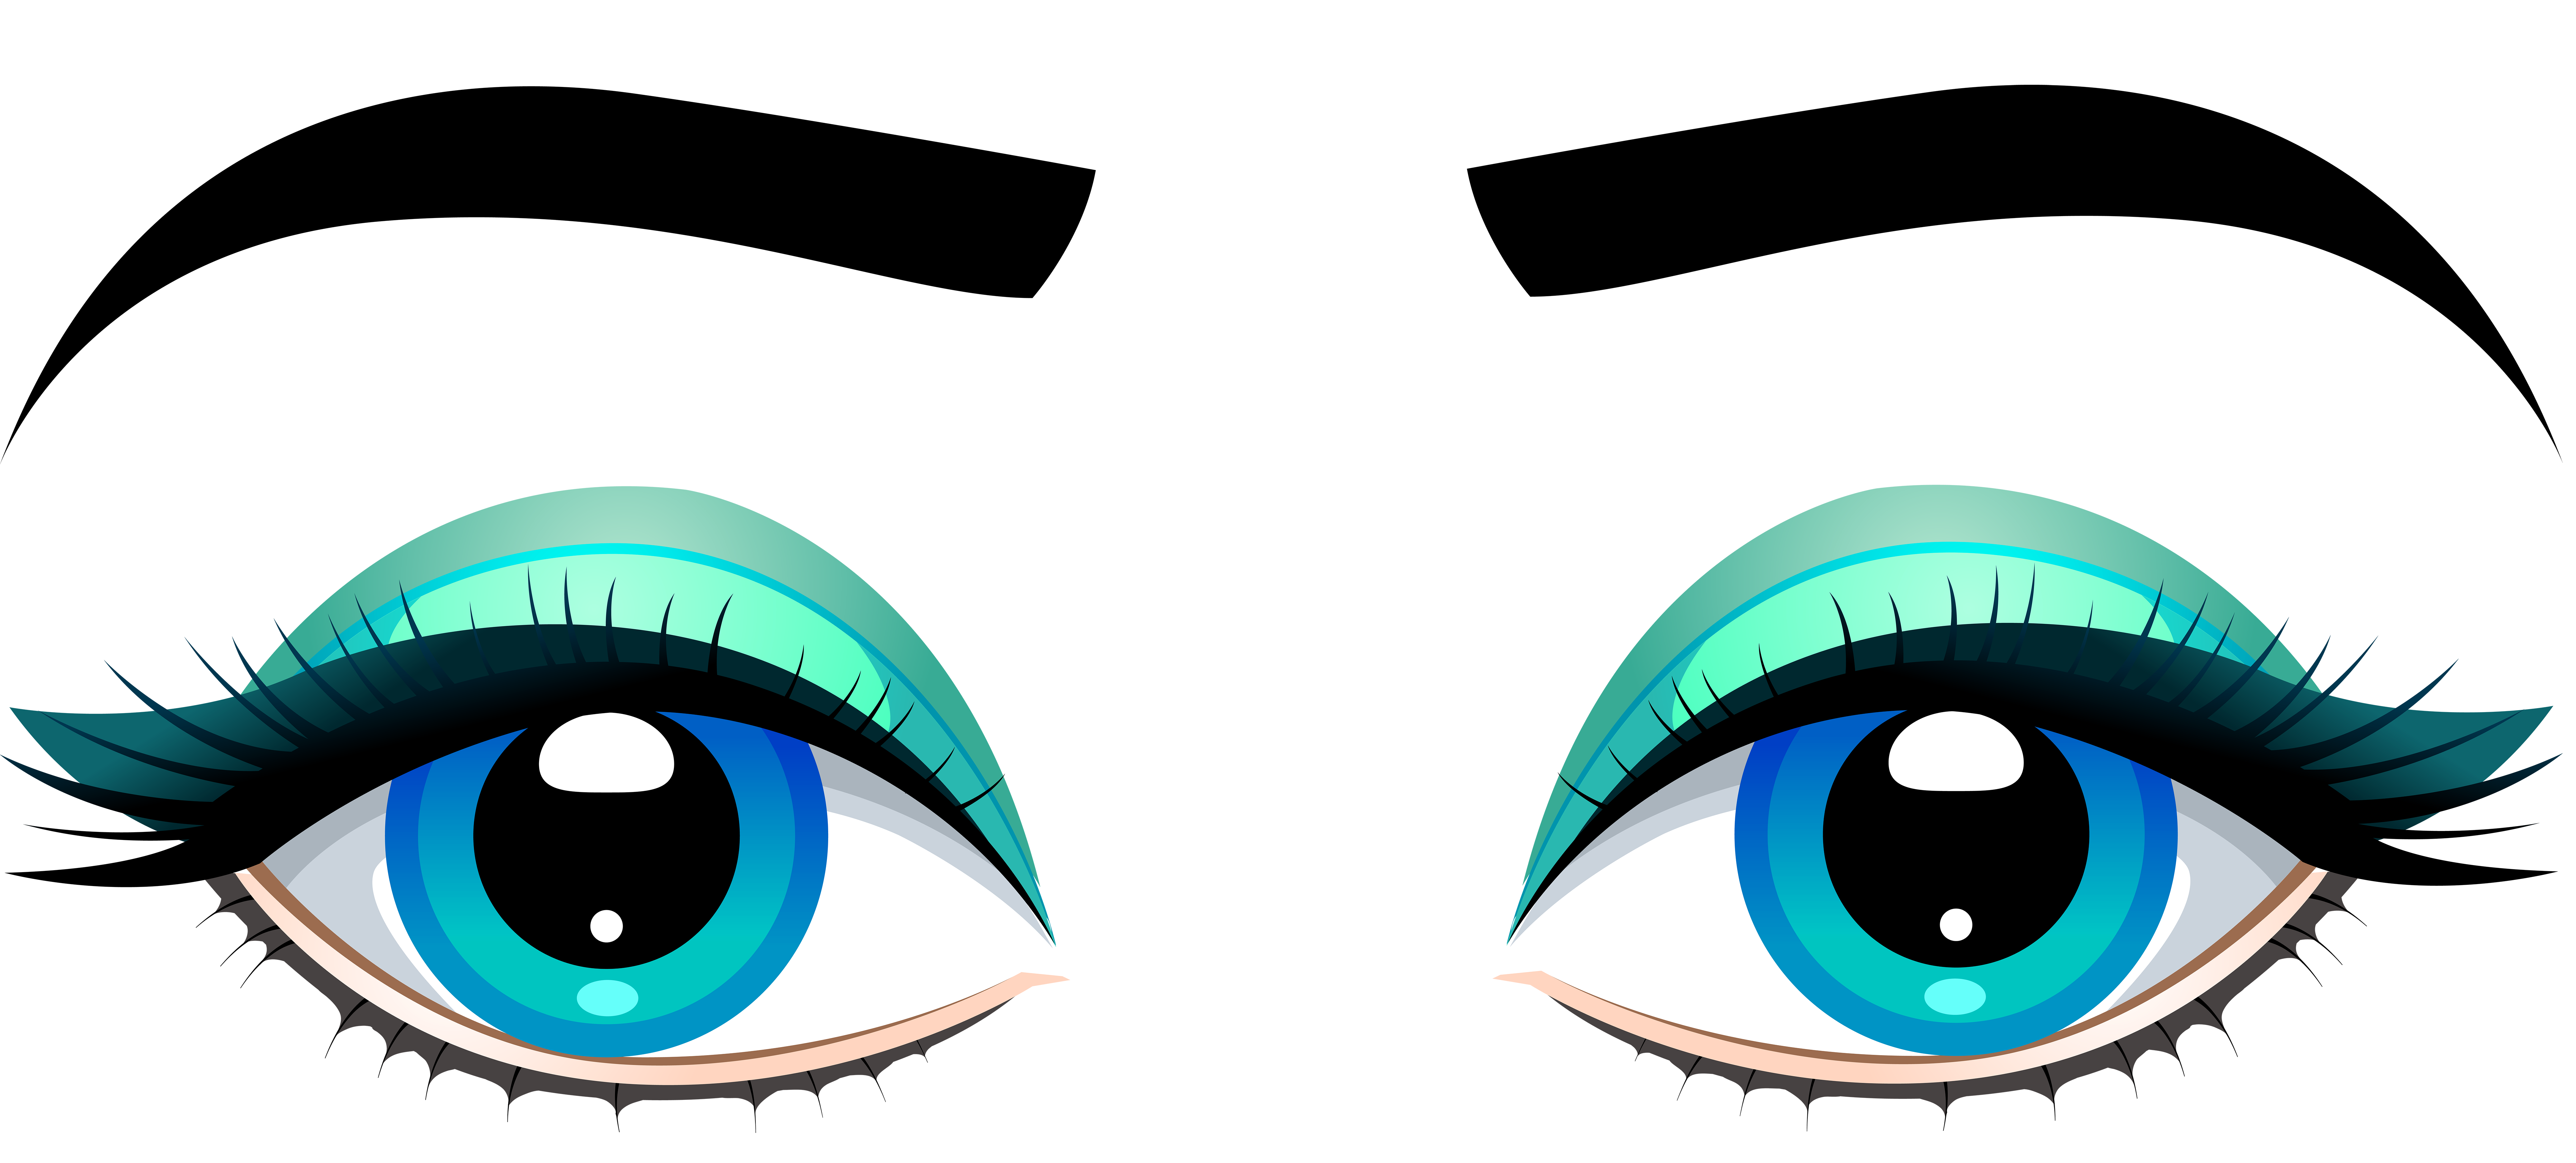 Happy Cartoon Eyes With Eyelashes download (With images